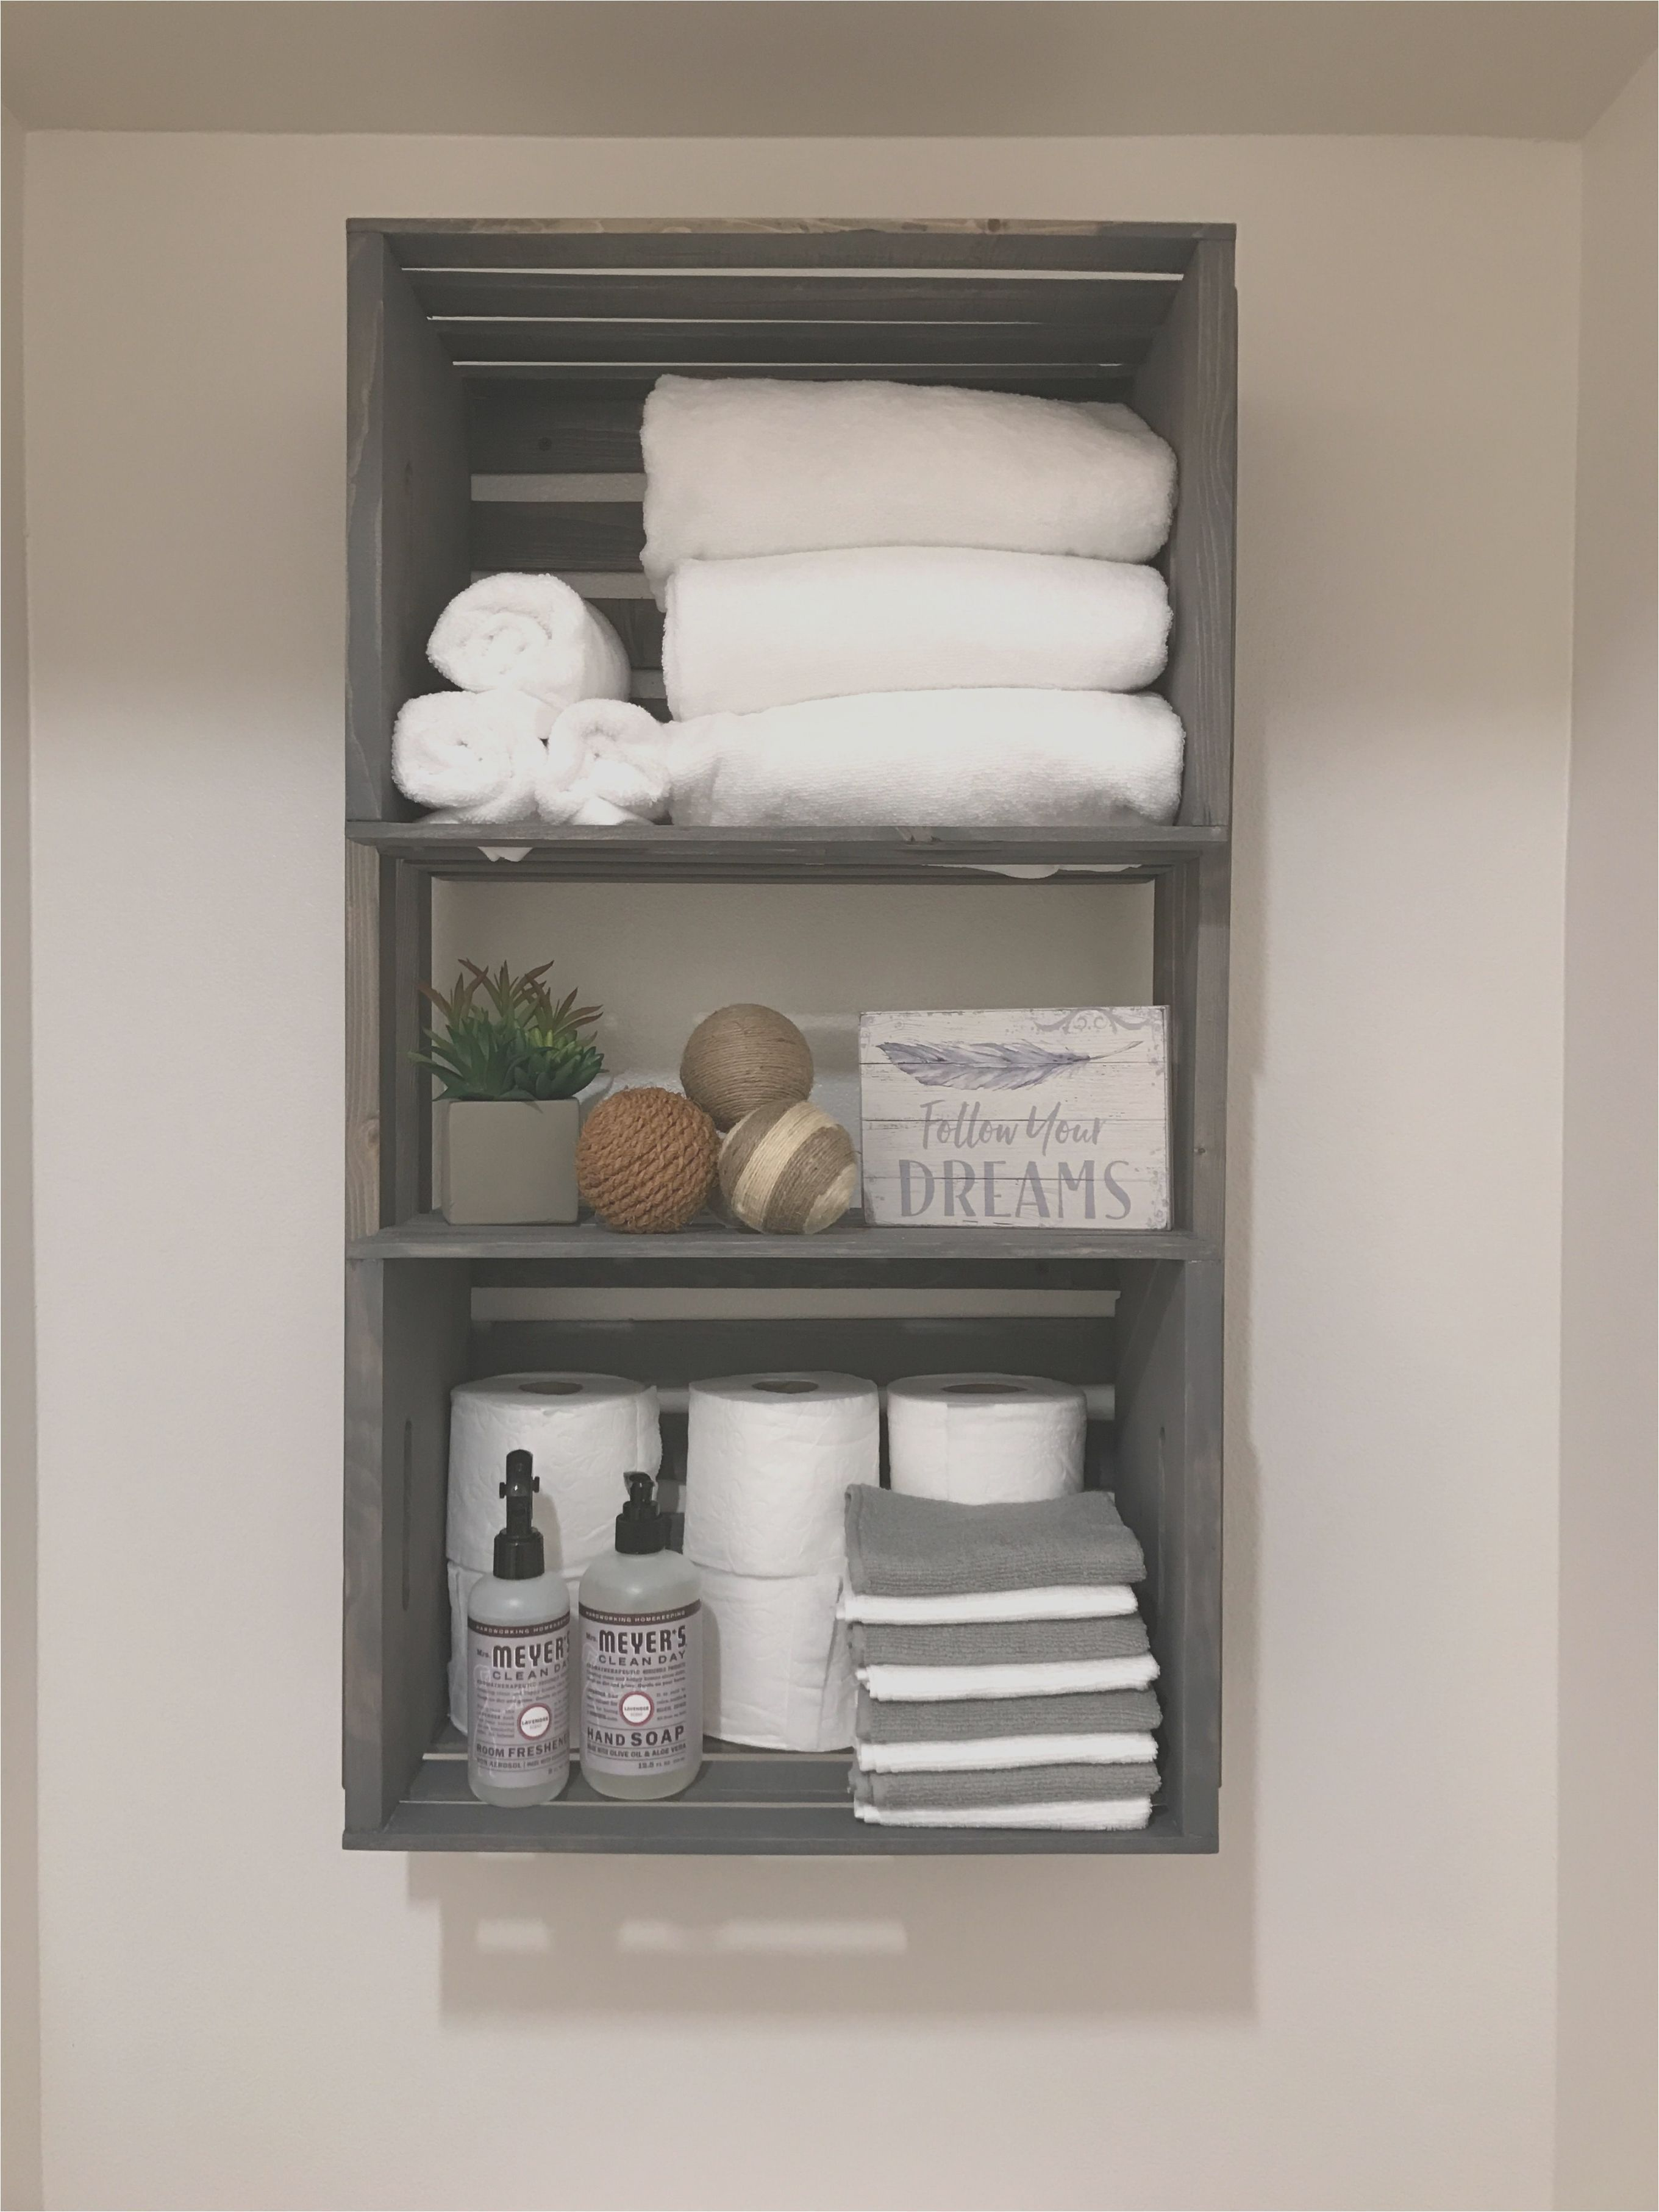 Wall Mount Storage Cabinet Lovely Bathroom Hanging Storage With Bathroom Towel Storage Diy Bathroom Storage Bathroom Wall Cabinets